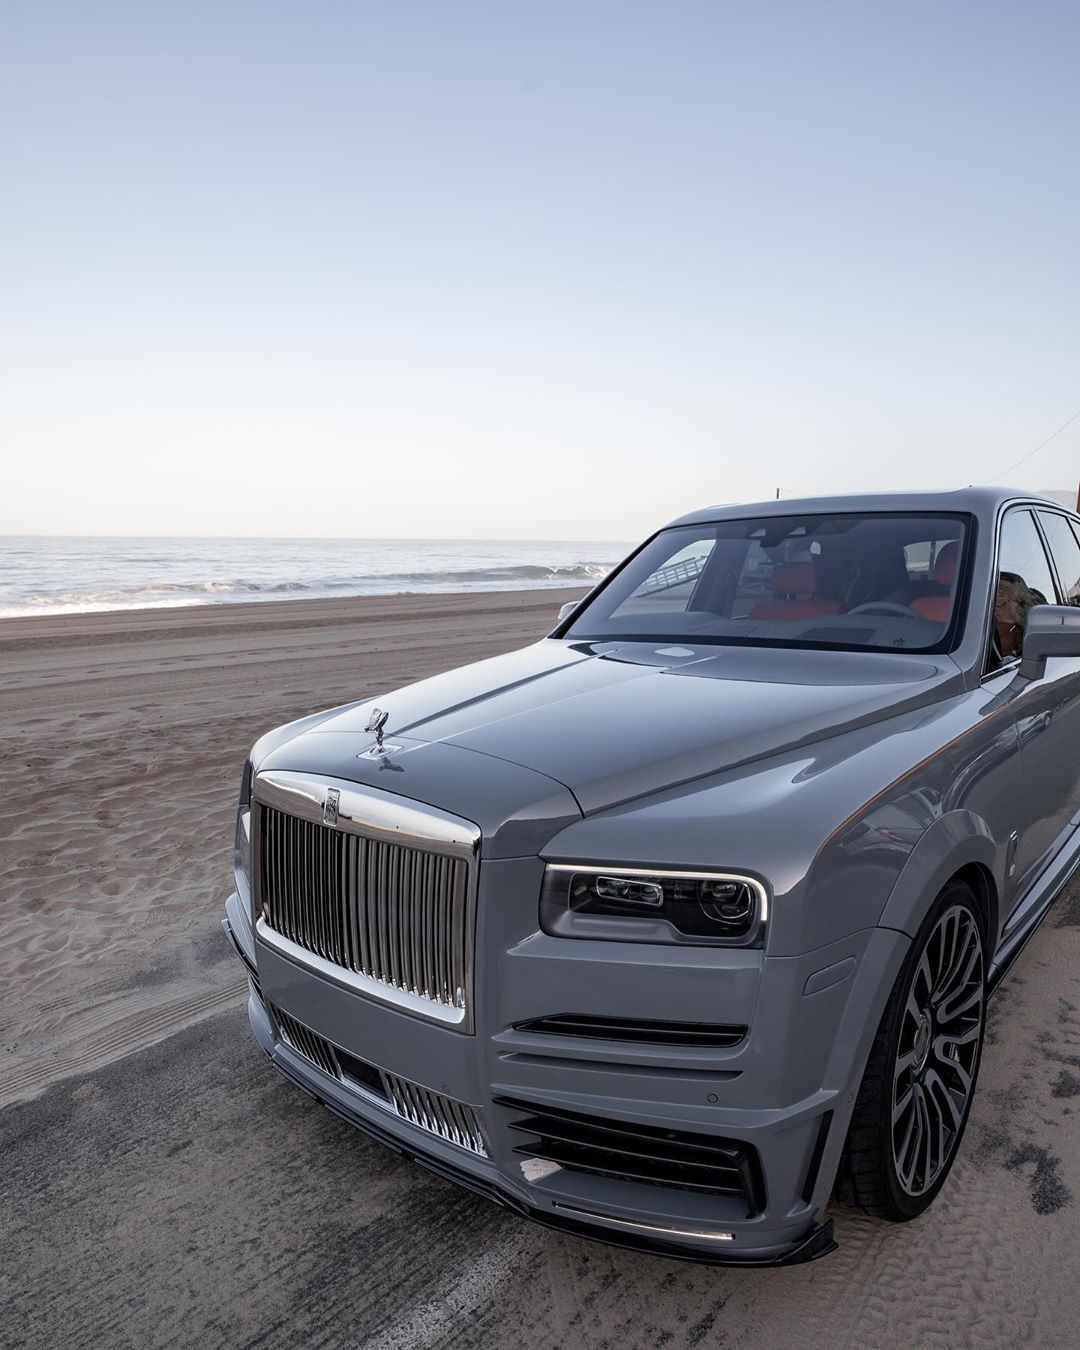 Mansory Rolls-Royce Cullinan Comes With Matching Nardo